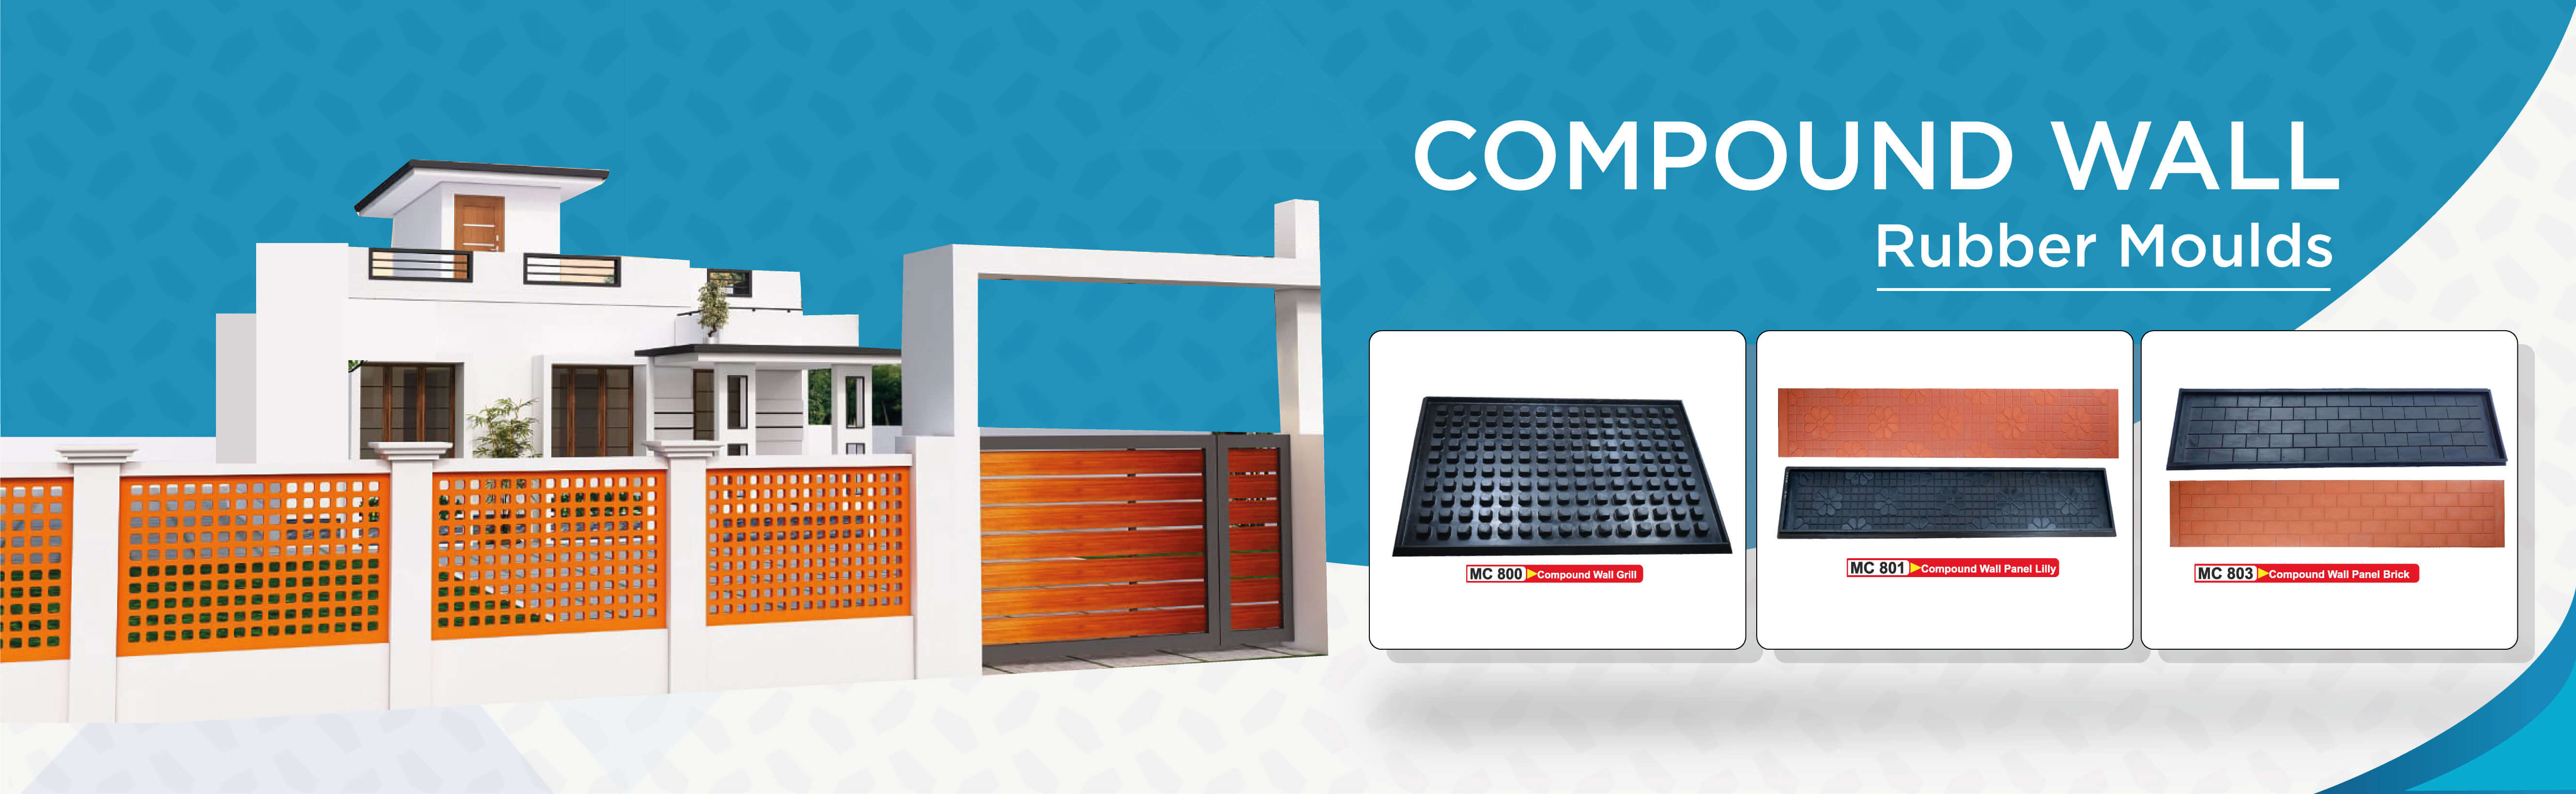 compound wall grill rubber moulds in Kerala,